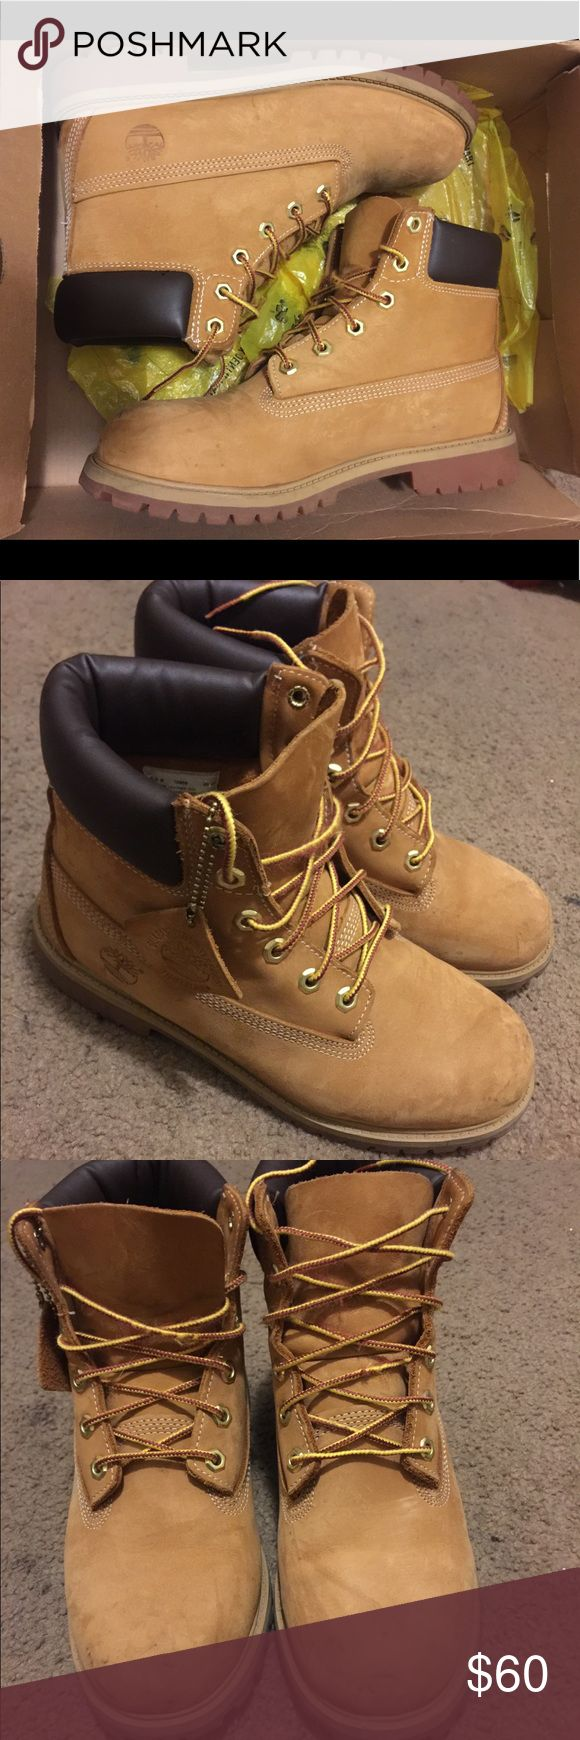 WHEAT TIMBERLAND BOOTS Size 6.5 Wheat Timberland Boots A couple of small marks, scuffs, and signs of normal wear but other than that they're in good condition. COMES IN OG BOX AS WELL Timberland Shoes Boots